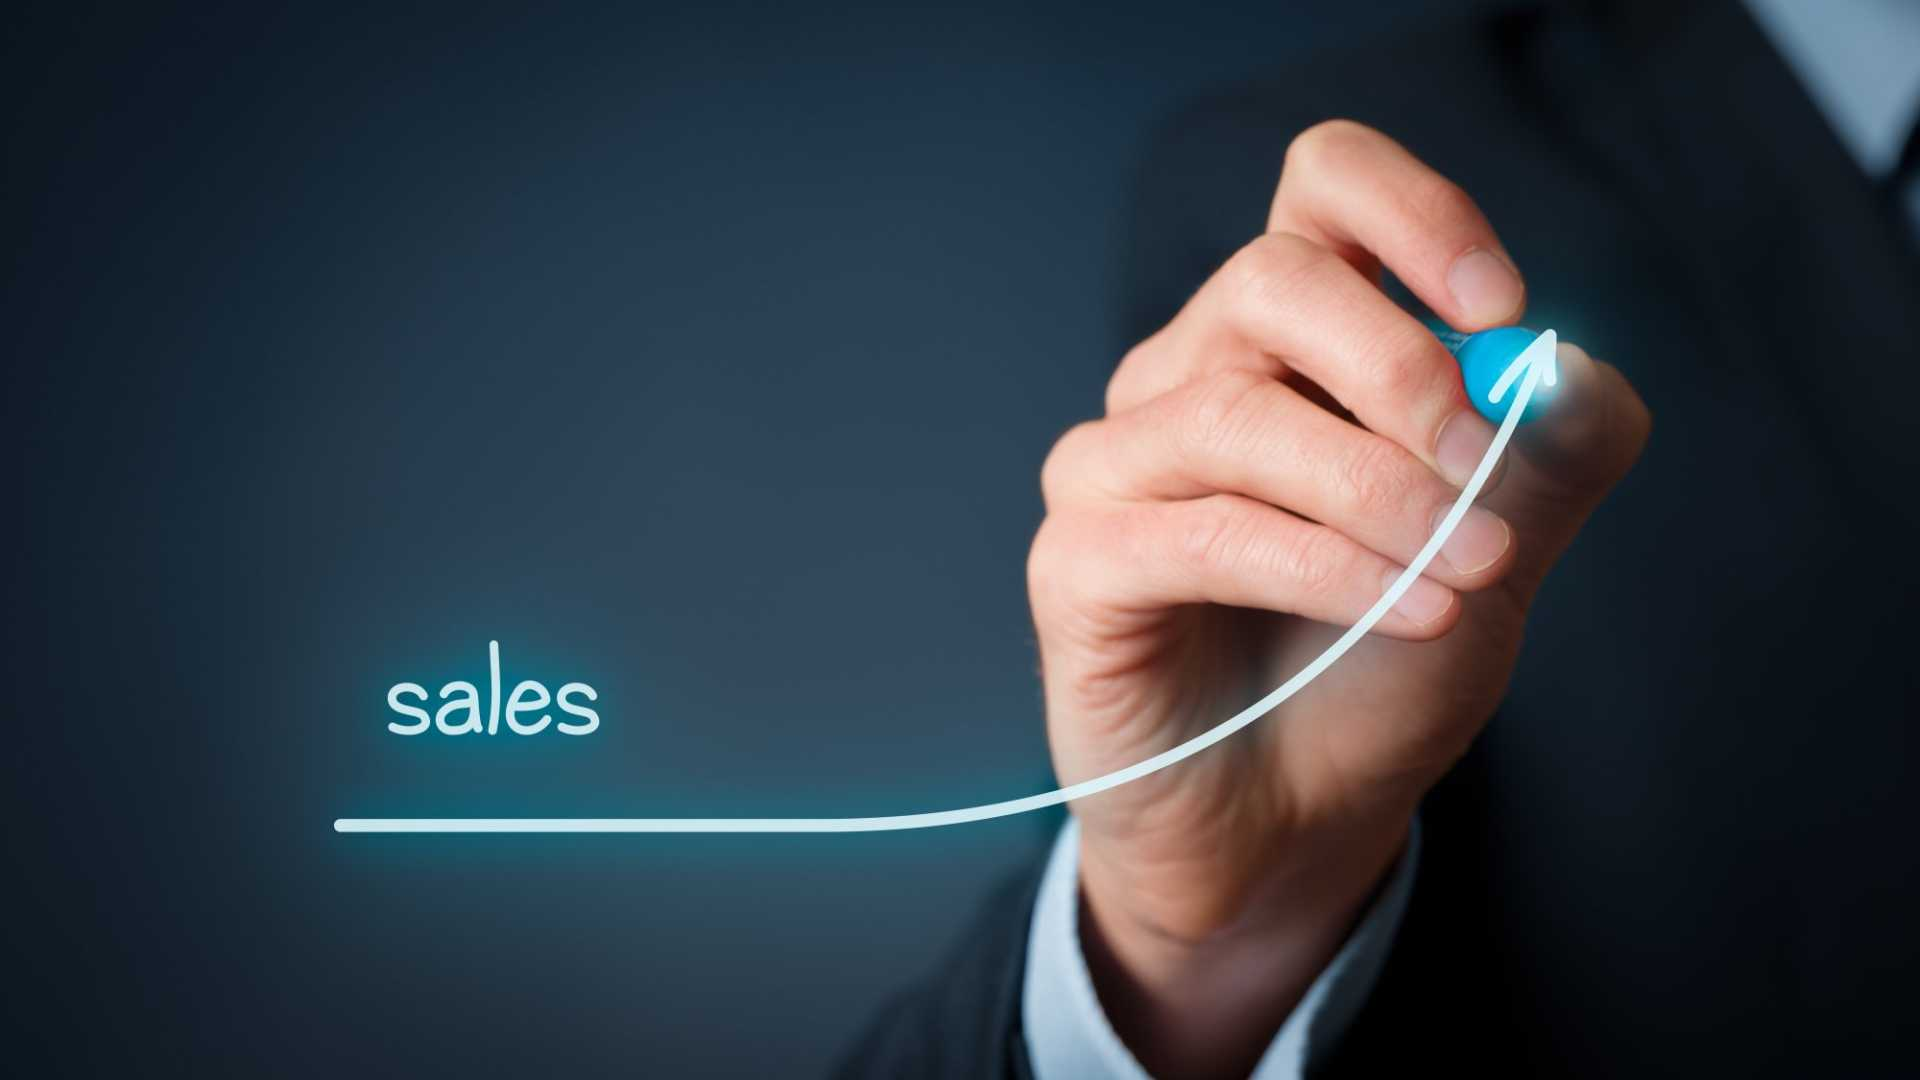 5 Sales Myths I Learned While Closing Tens of Millions in Revenue